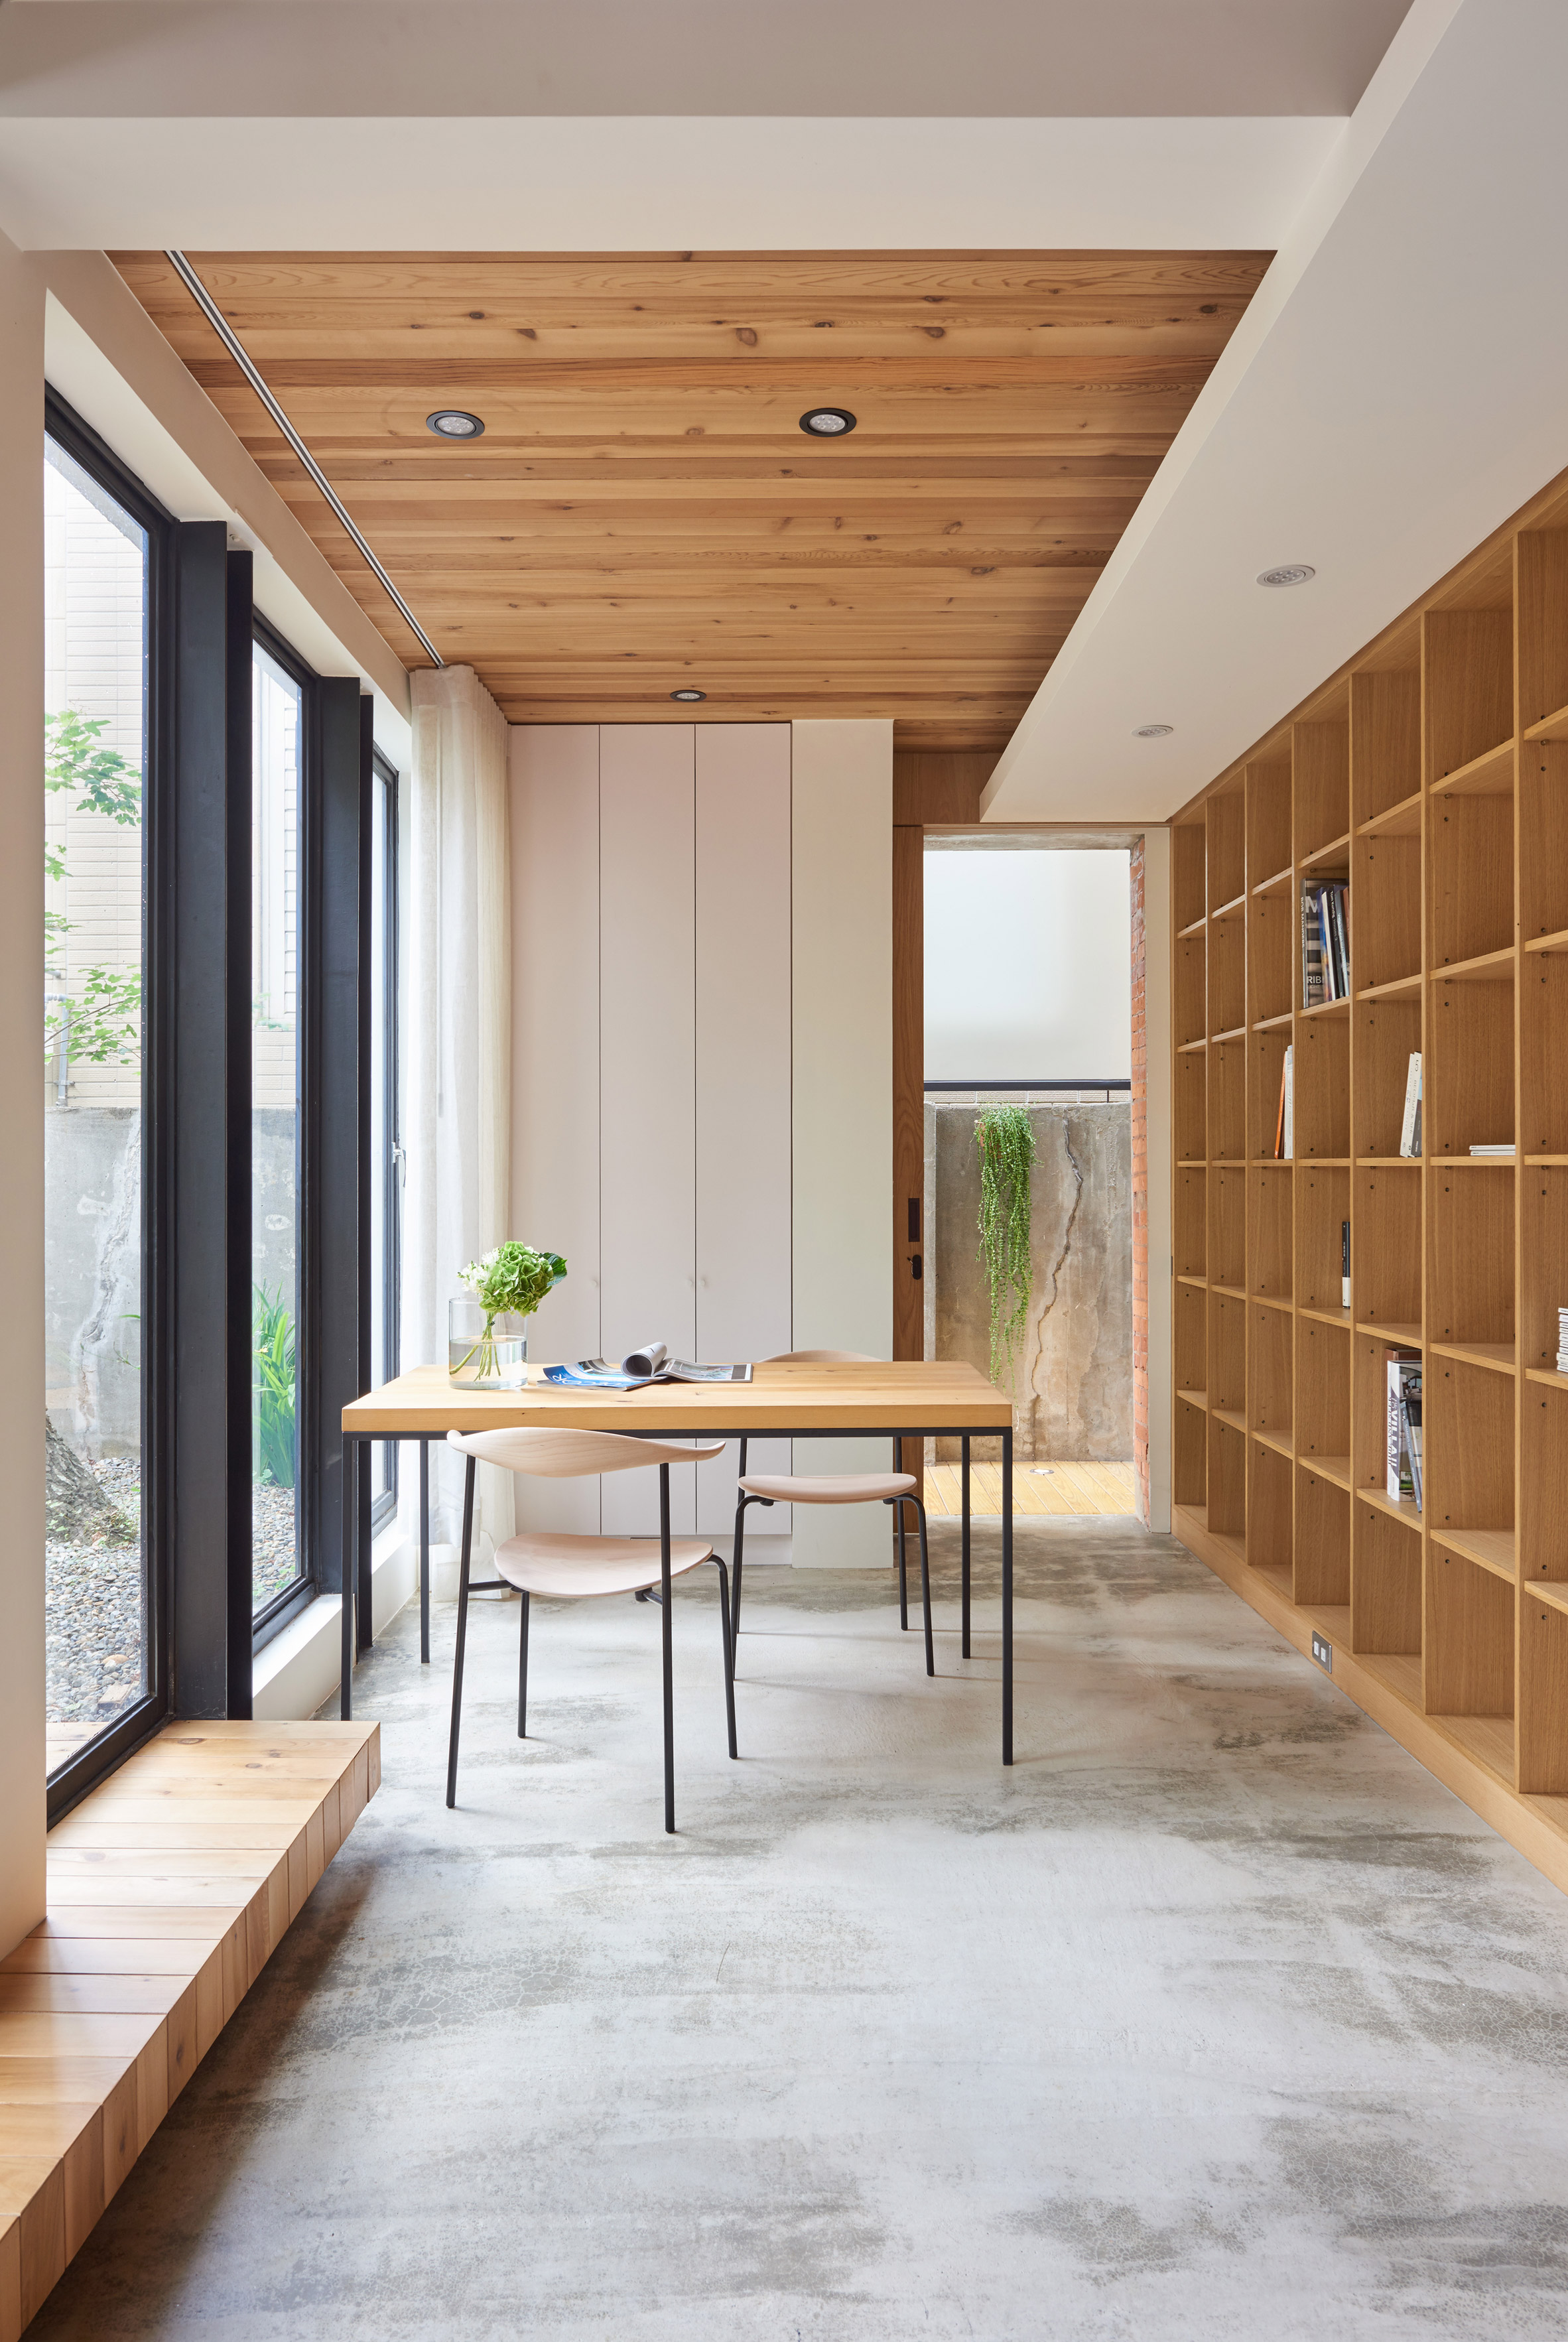 1960s taiwanese home gets a bright and airy renovation curbed. Black Bedroom Furniture Sets. Home Design Ideas